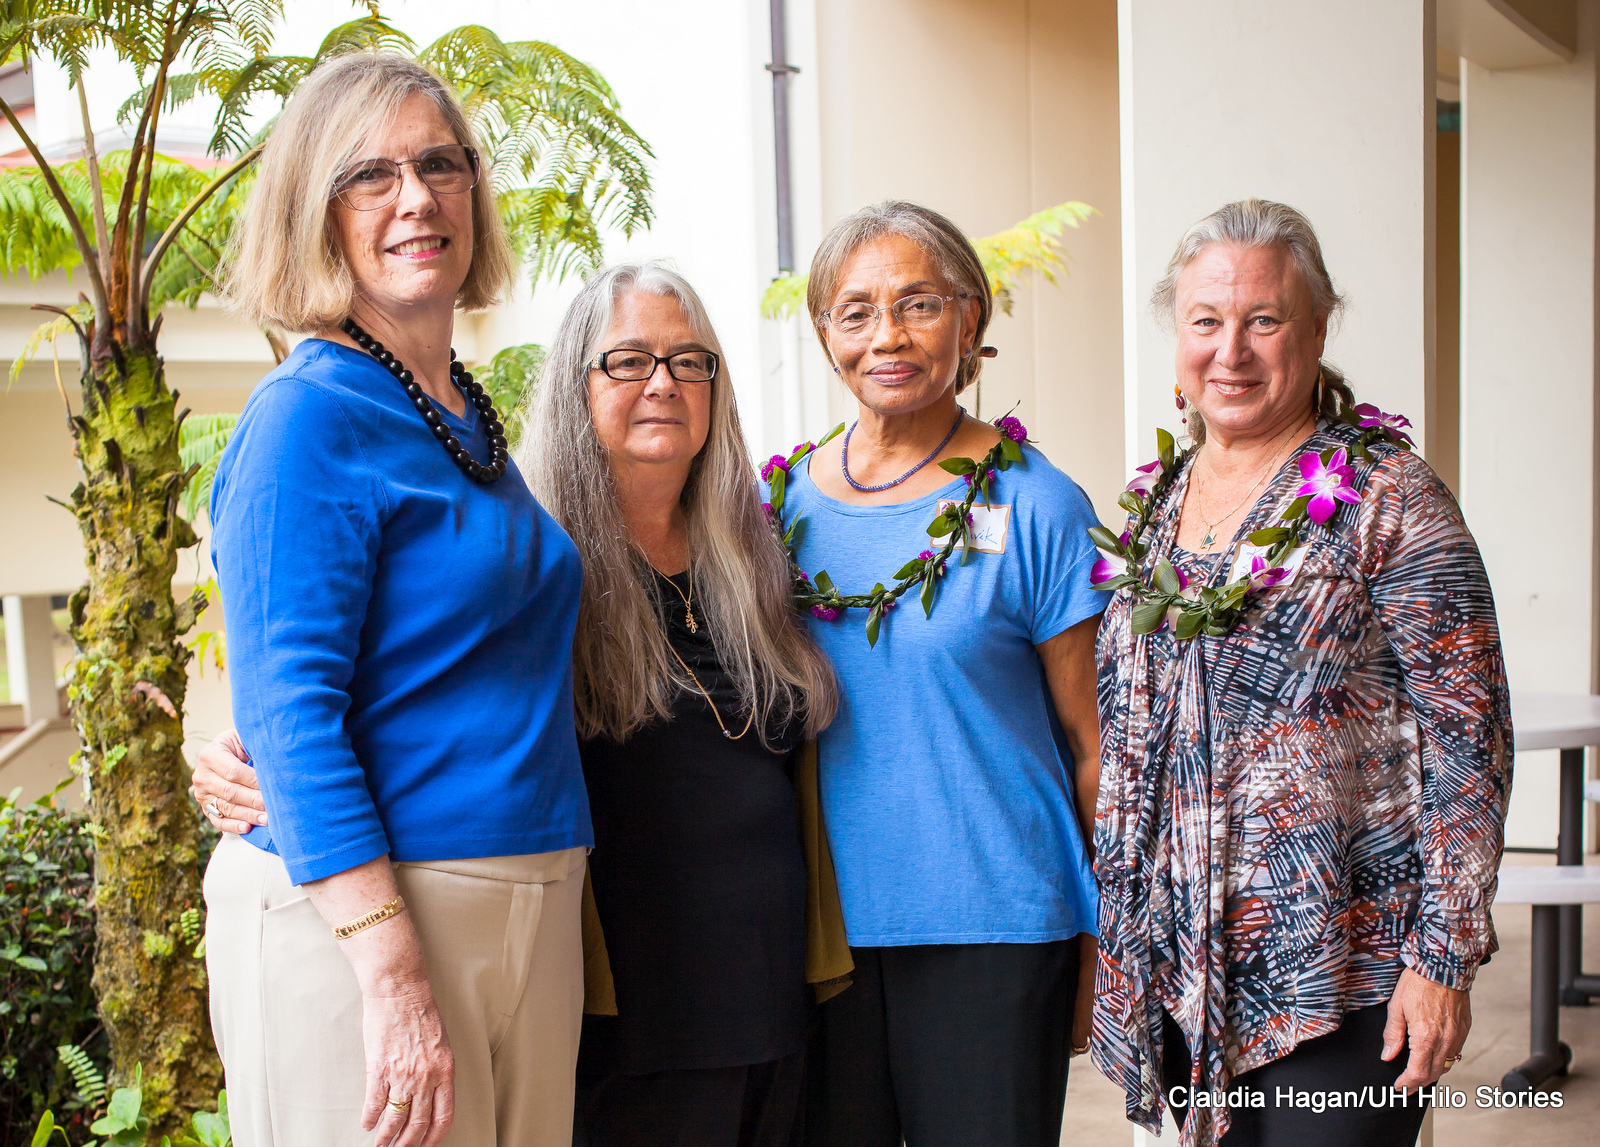 UH Hilo Women's Studies program celebrates 25 years and the start of new baccalaureate degree